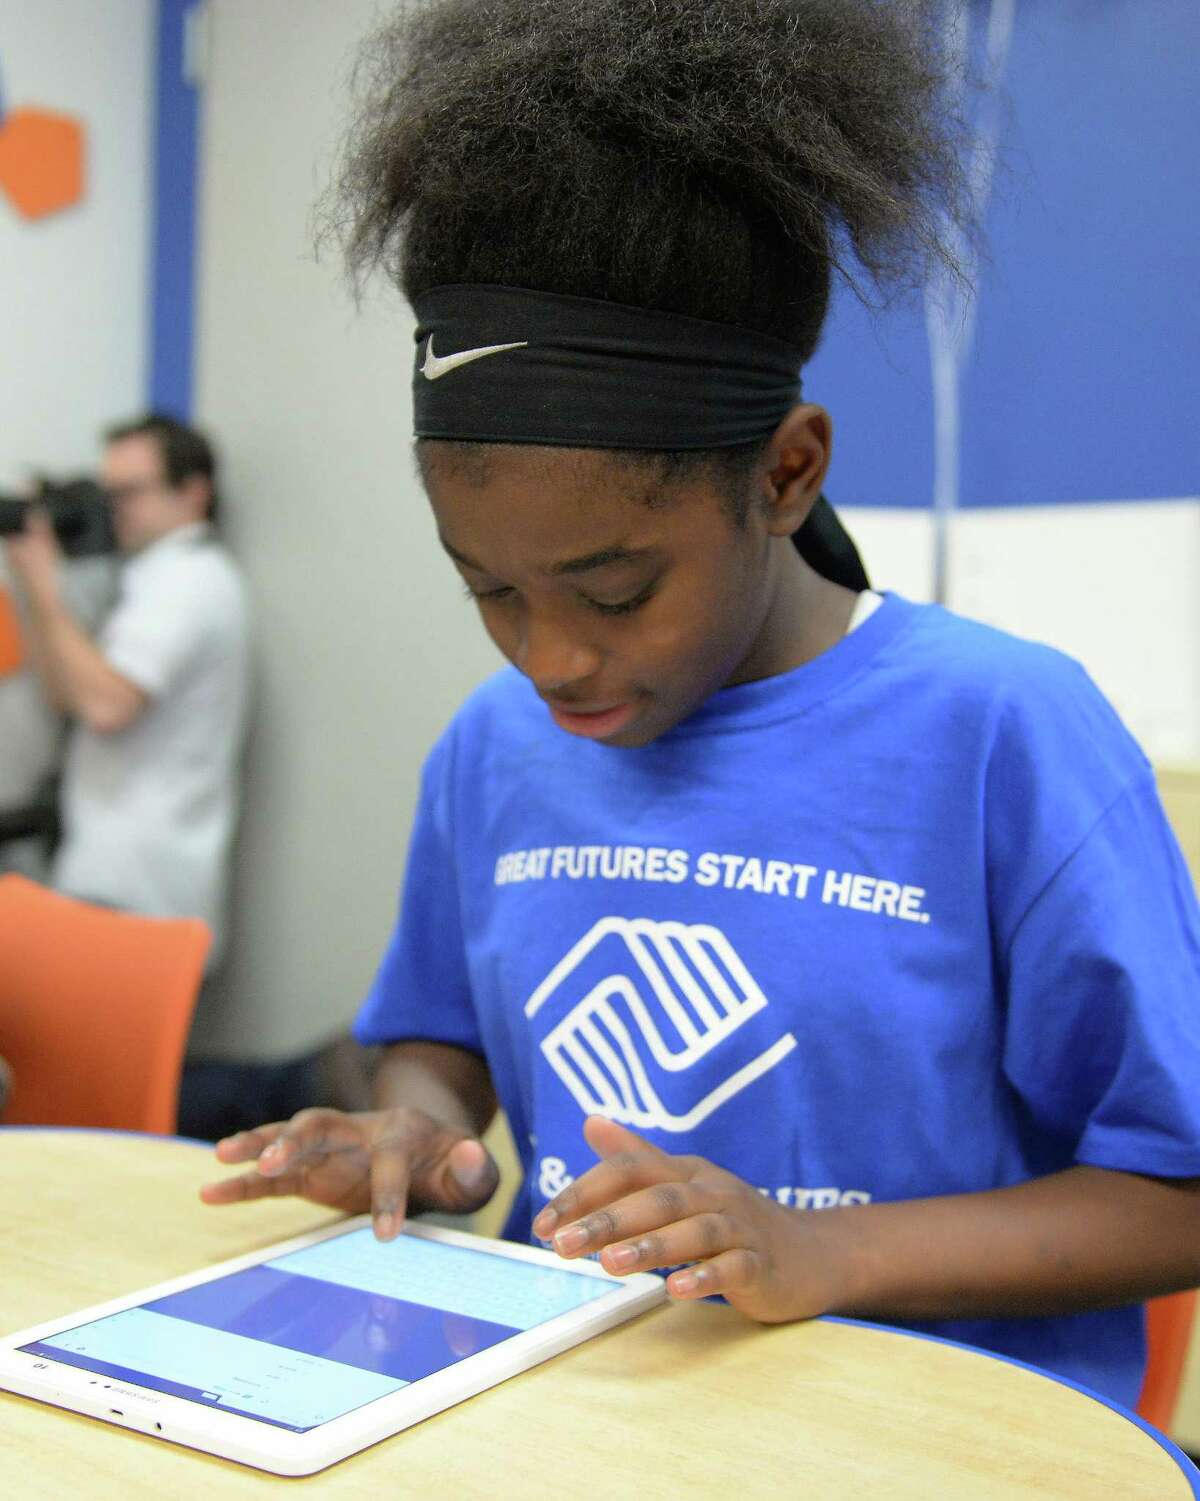 A Club member uses a tablet during the unveiling of an updated Tech Center at the Boys and Girls Club in Stafford, TX on Friday, February 2, 2018.